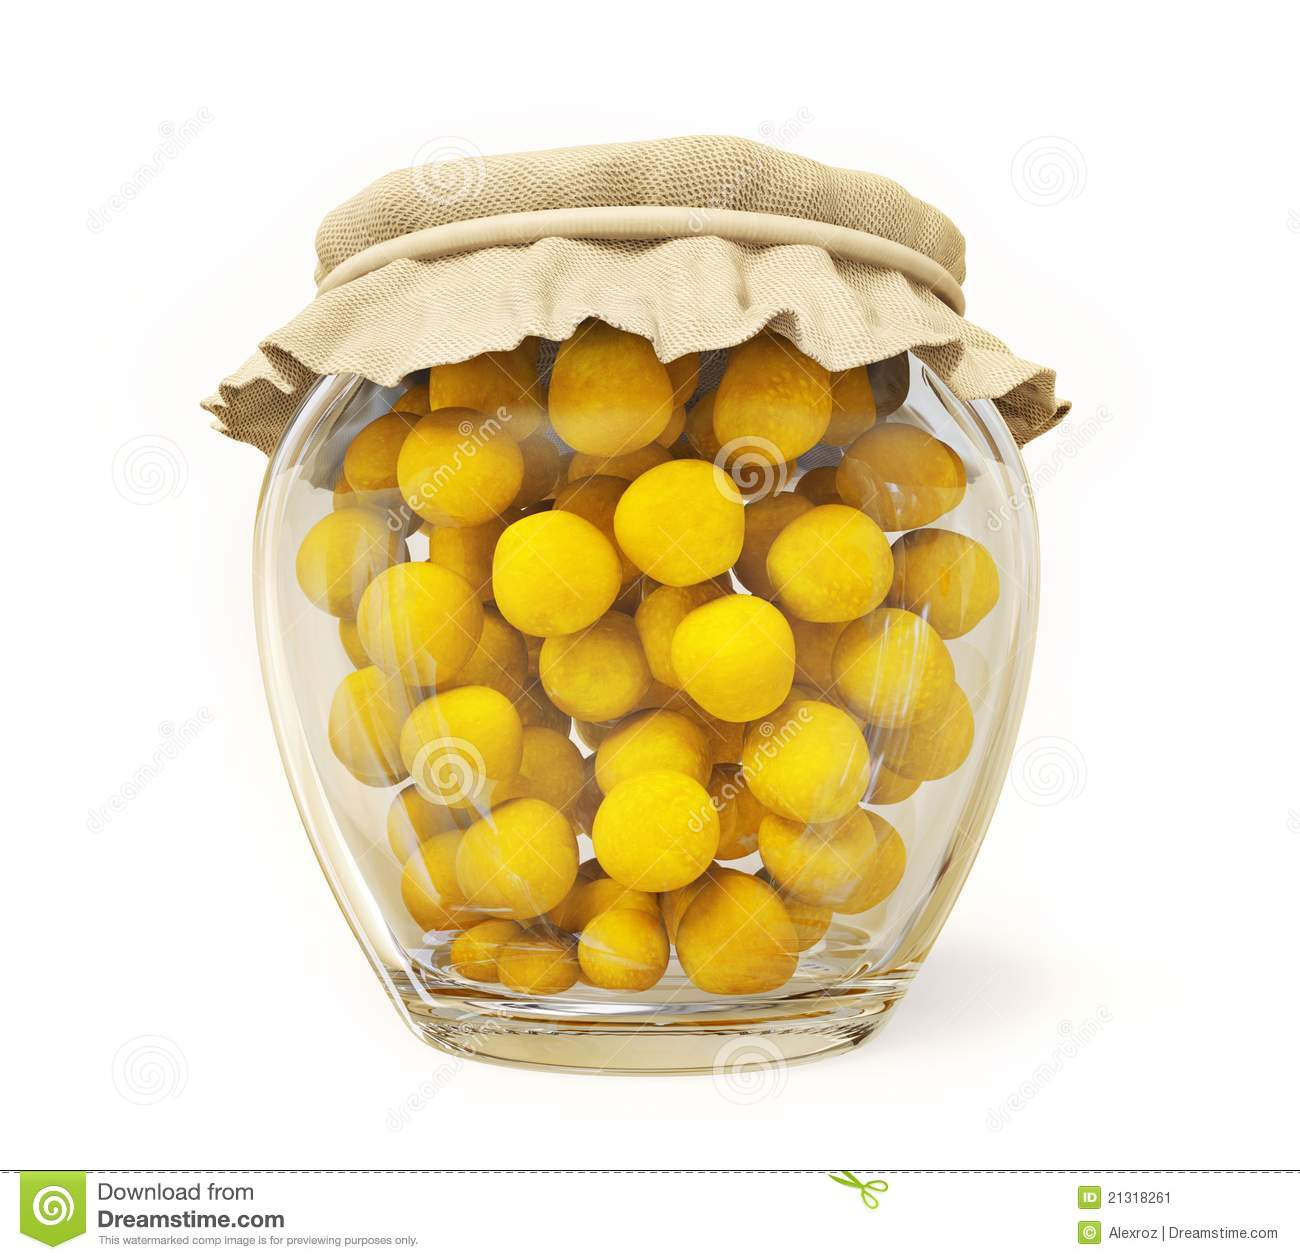 Canned Fruits In A Glass Jar Isolated On White